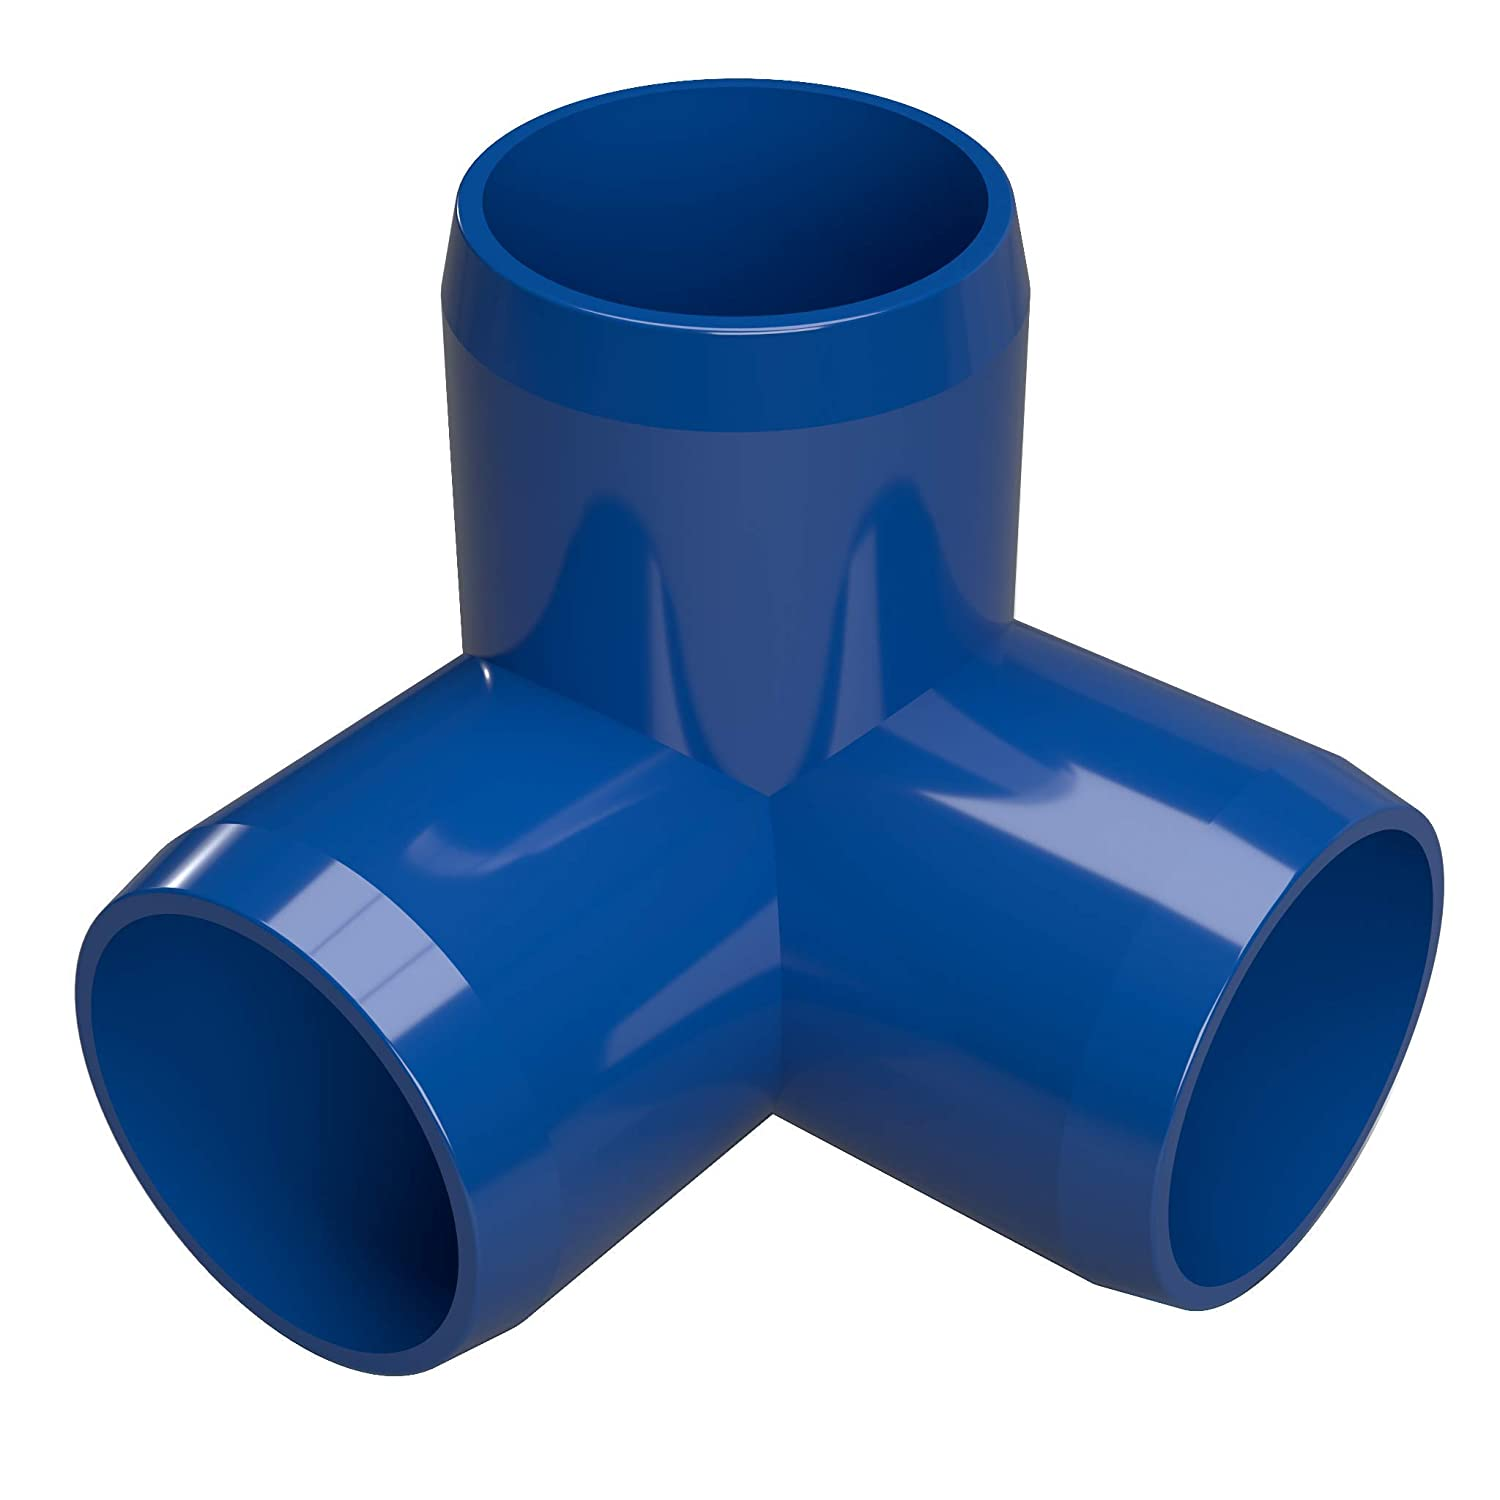 "FORMUFIT F0343WE-BL-8 3-Way Elbow PVC Fitting, Furniture Grade, 3/4"" Size, Blue (Pack of 8)"